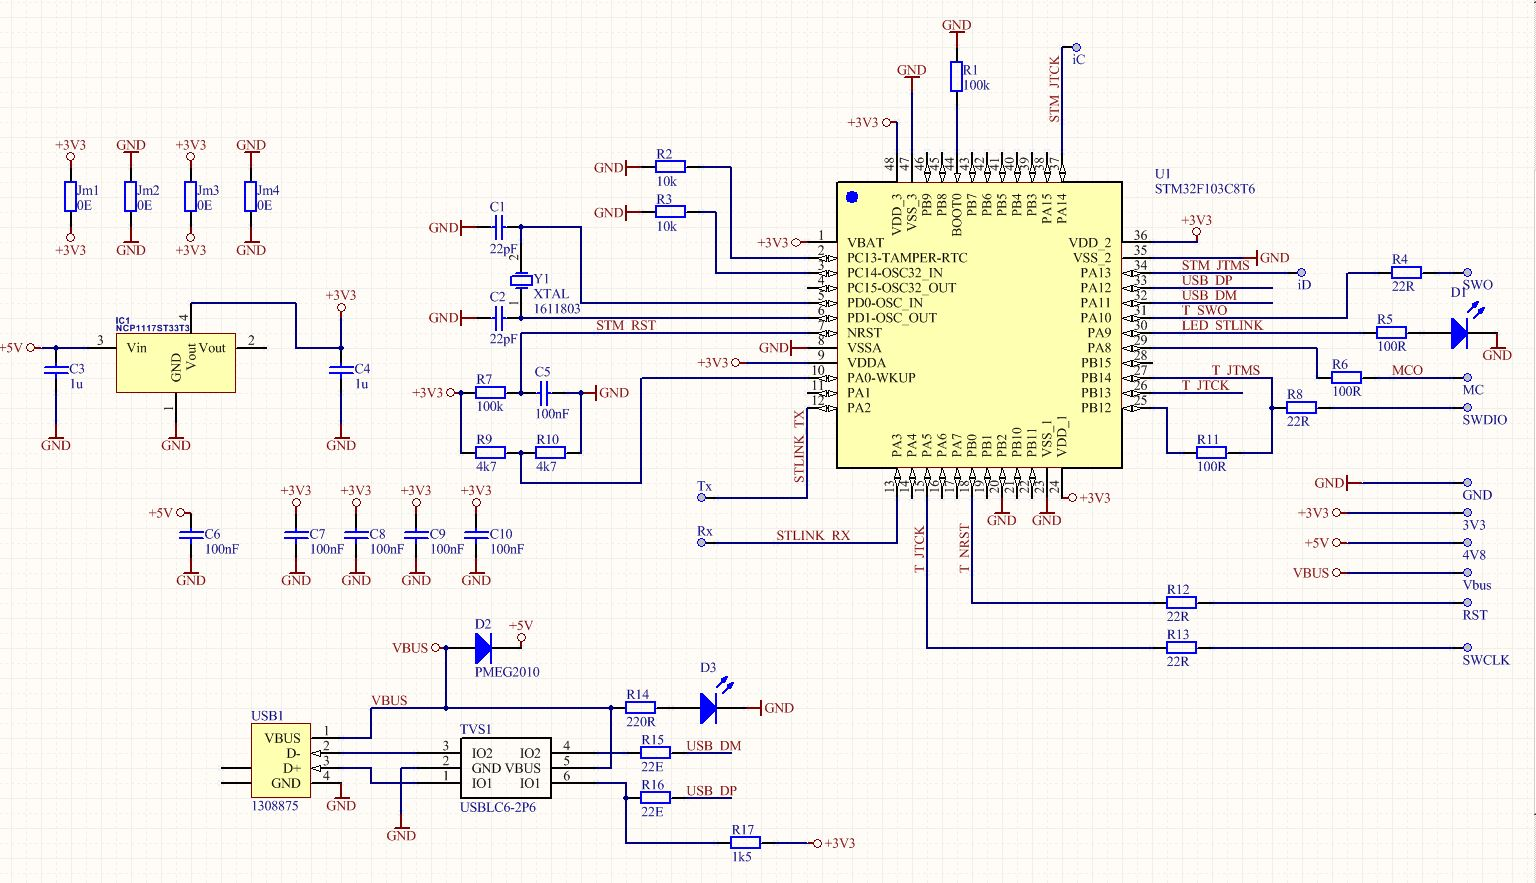 Stm32 Discovery Board Schematic on aston martin wiring diagram